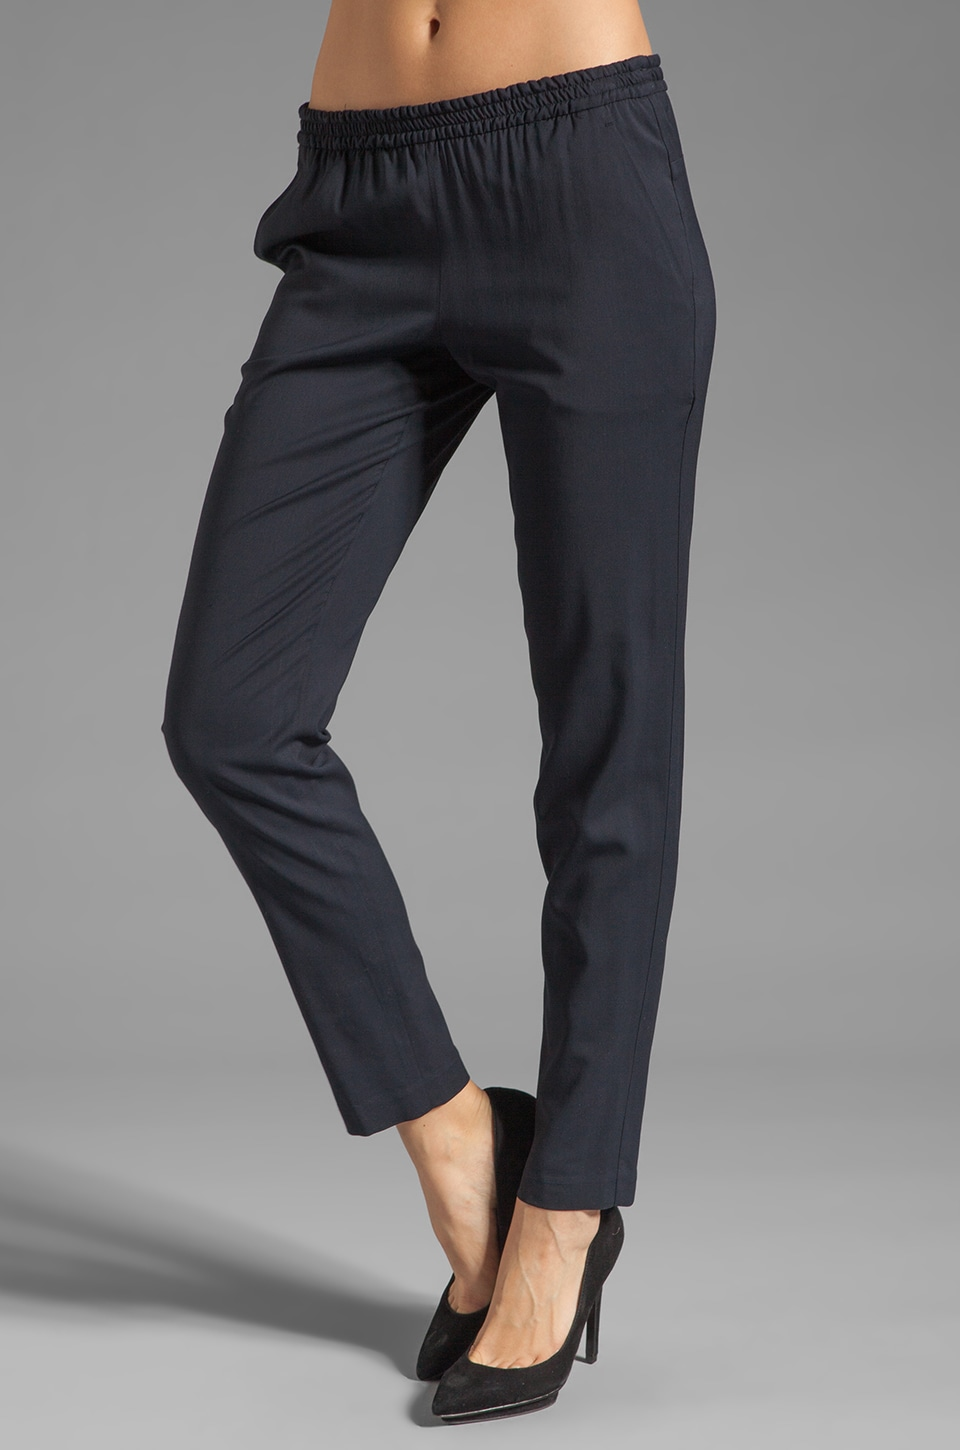 Theory Malaya Katla Pant in Dark Navy